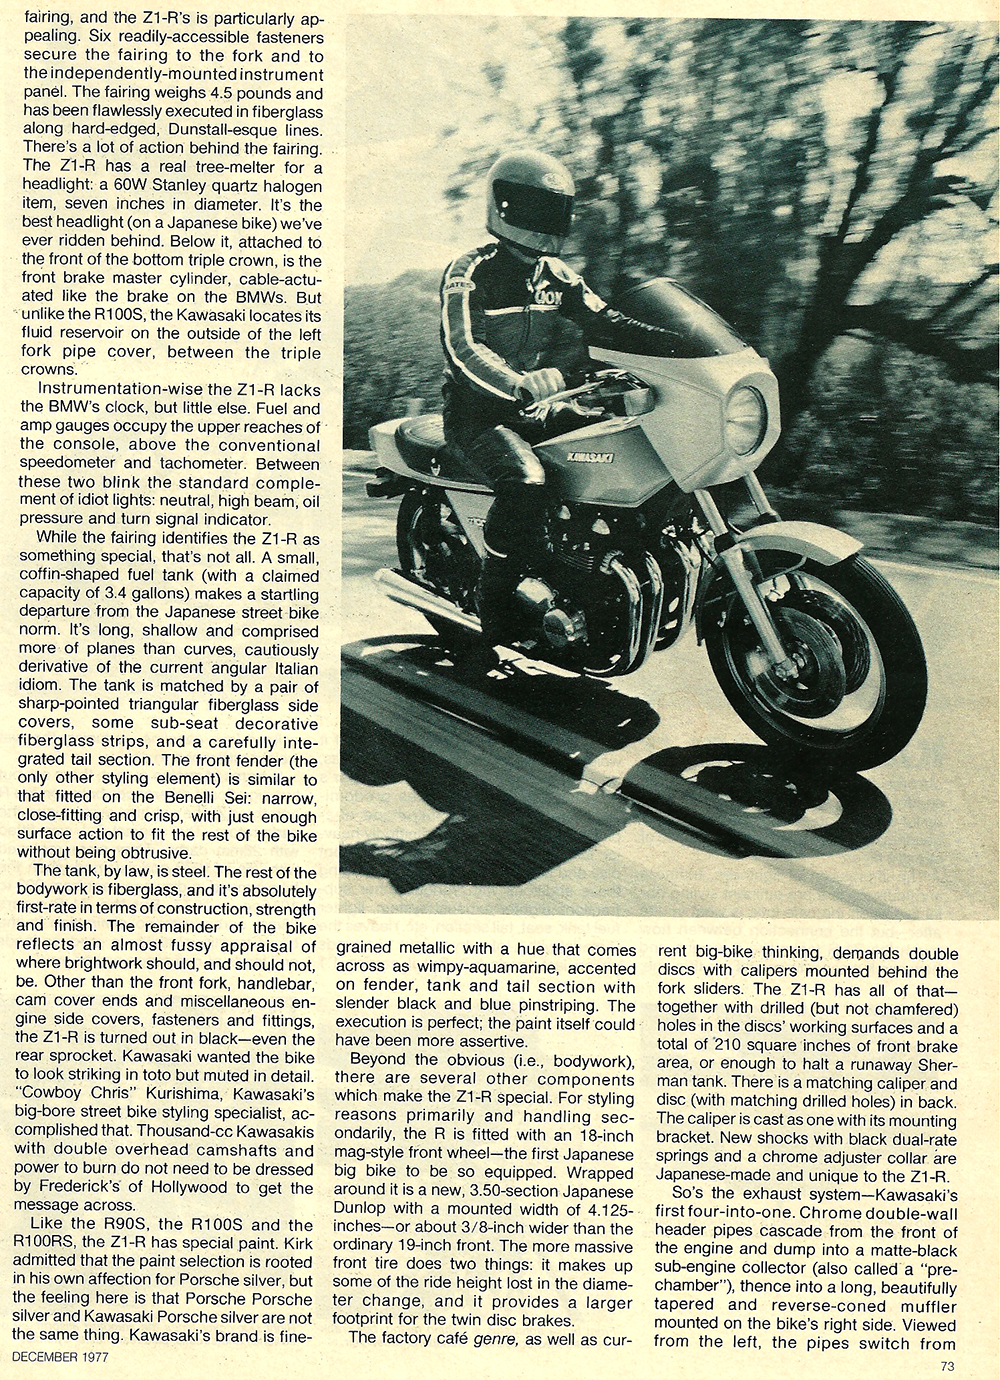 1977 Kawasaki Z1R road test 04.jpg